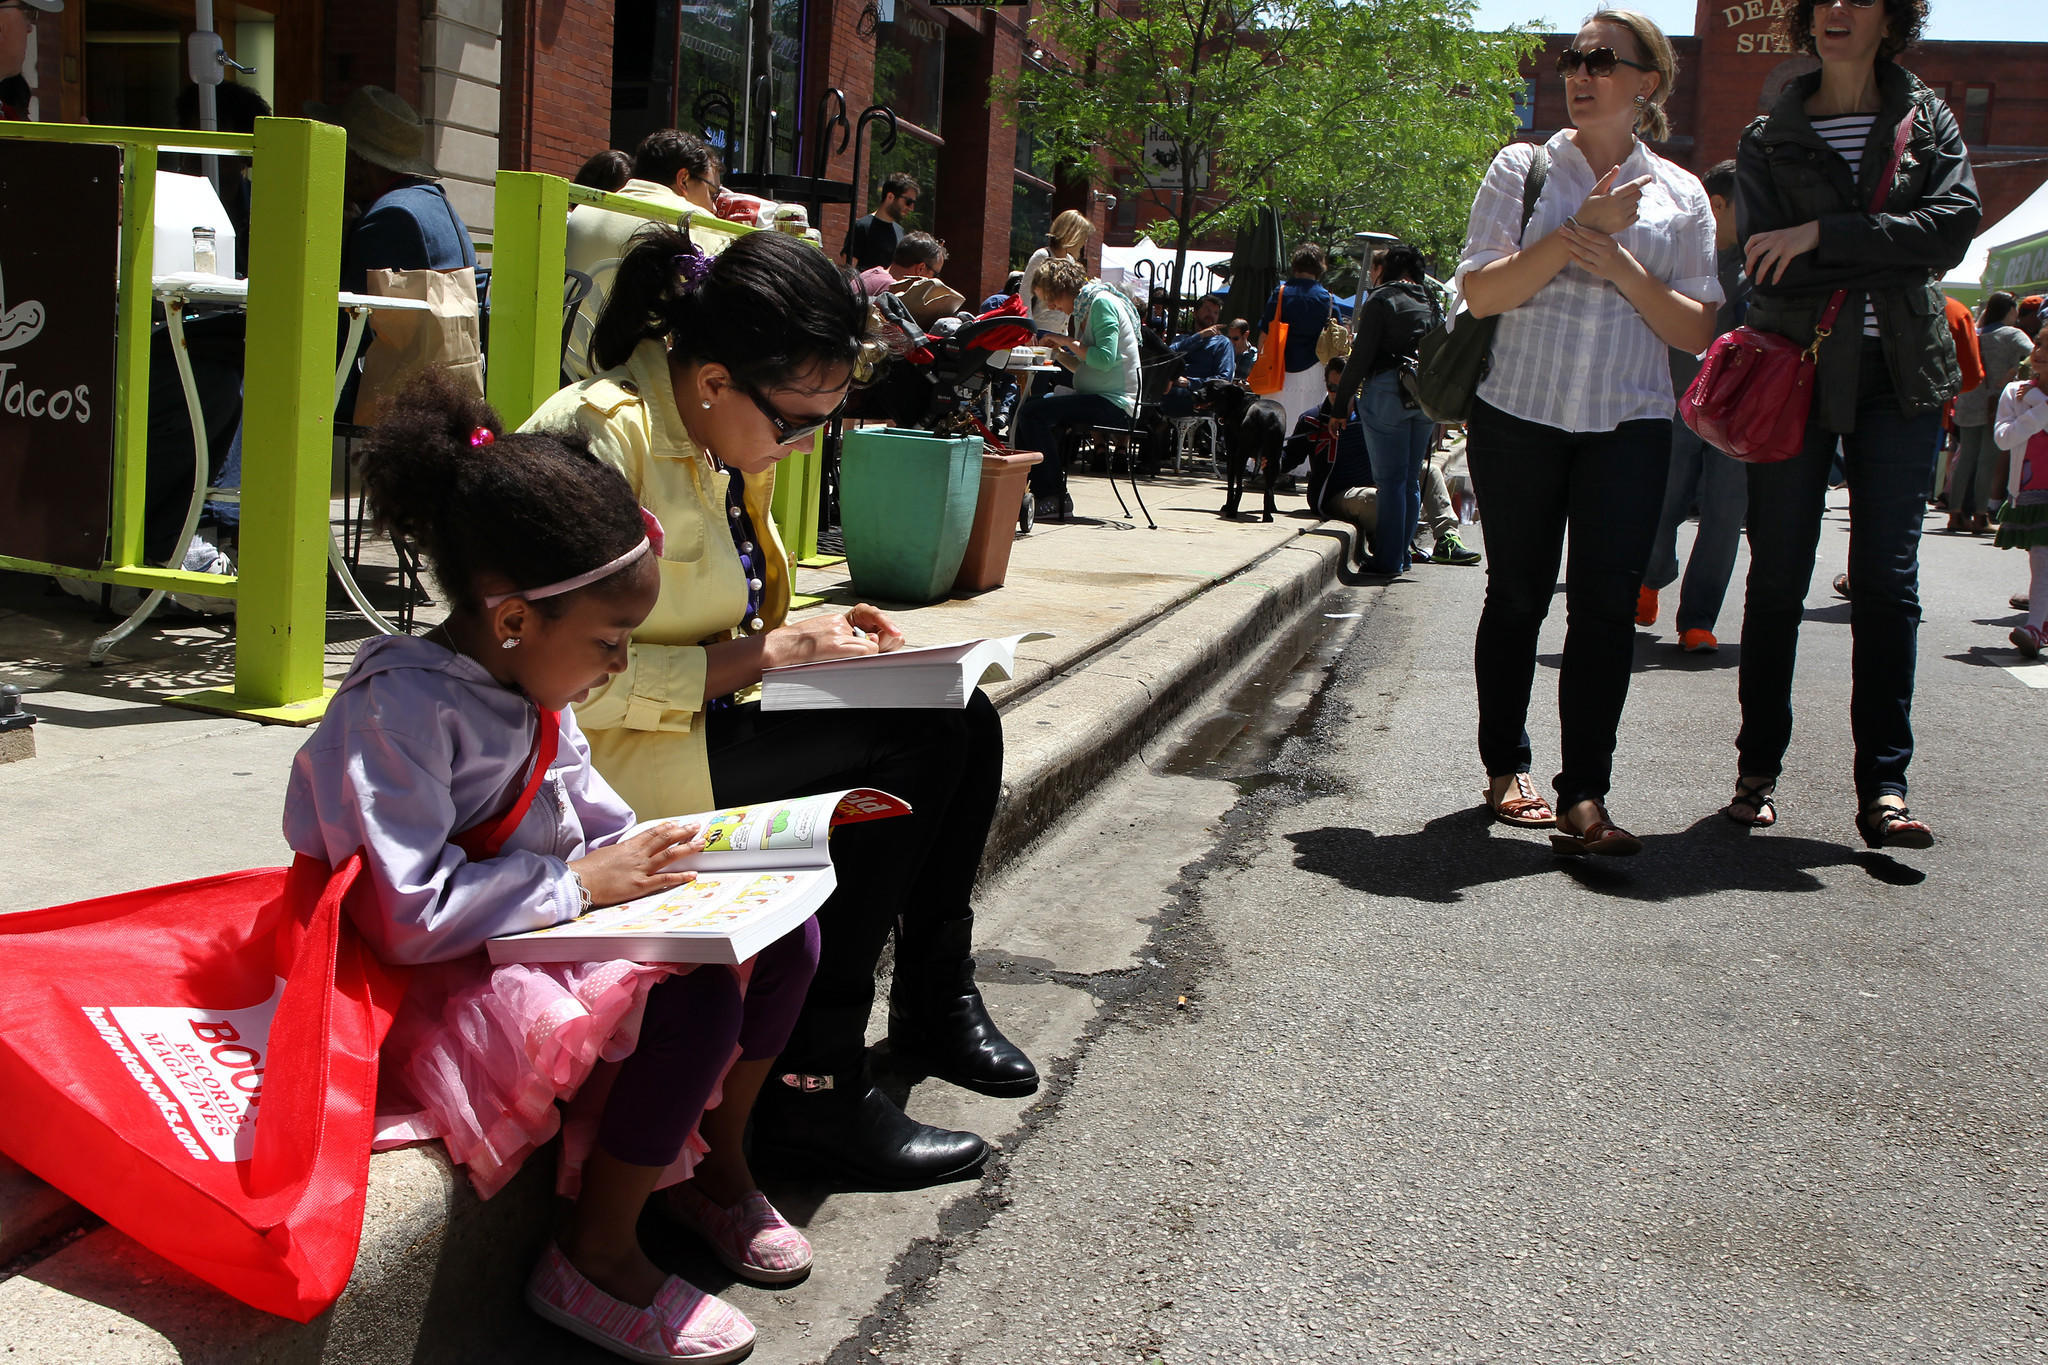 Marlene Silva and her daughter Jacqueline, 6, sit on a curb and start reading some of their book purchases at Printers Row Lit Fest.